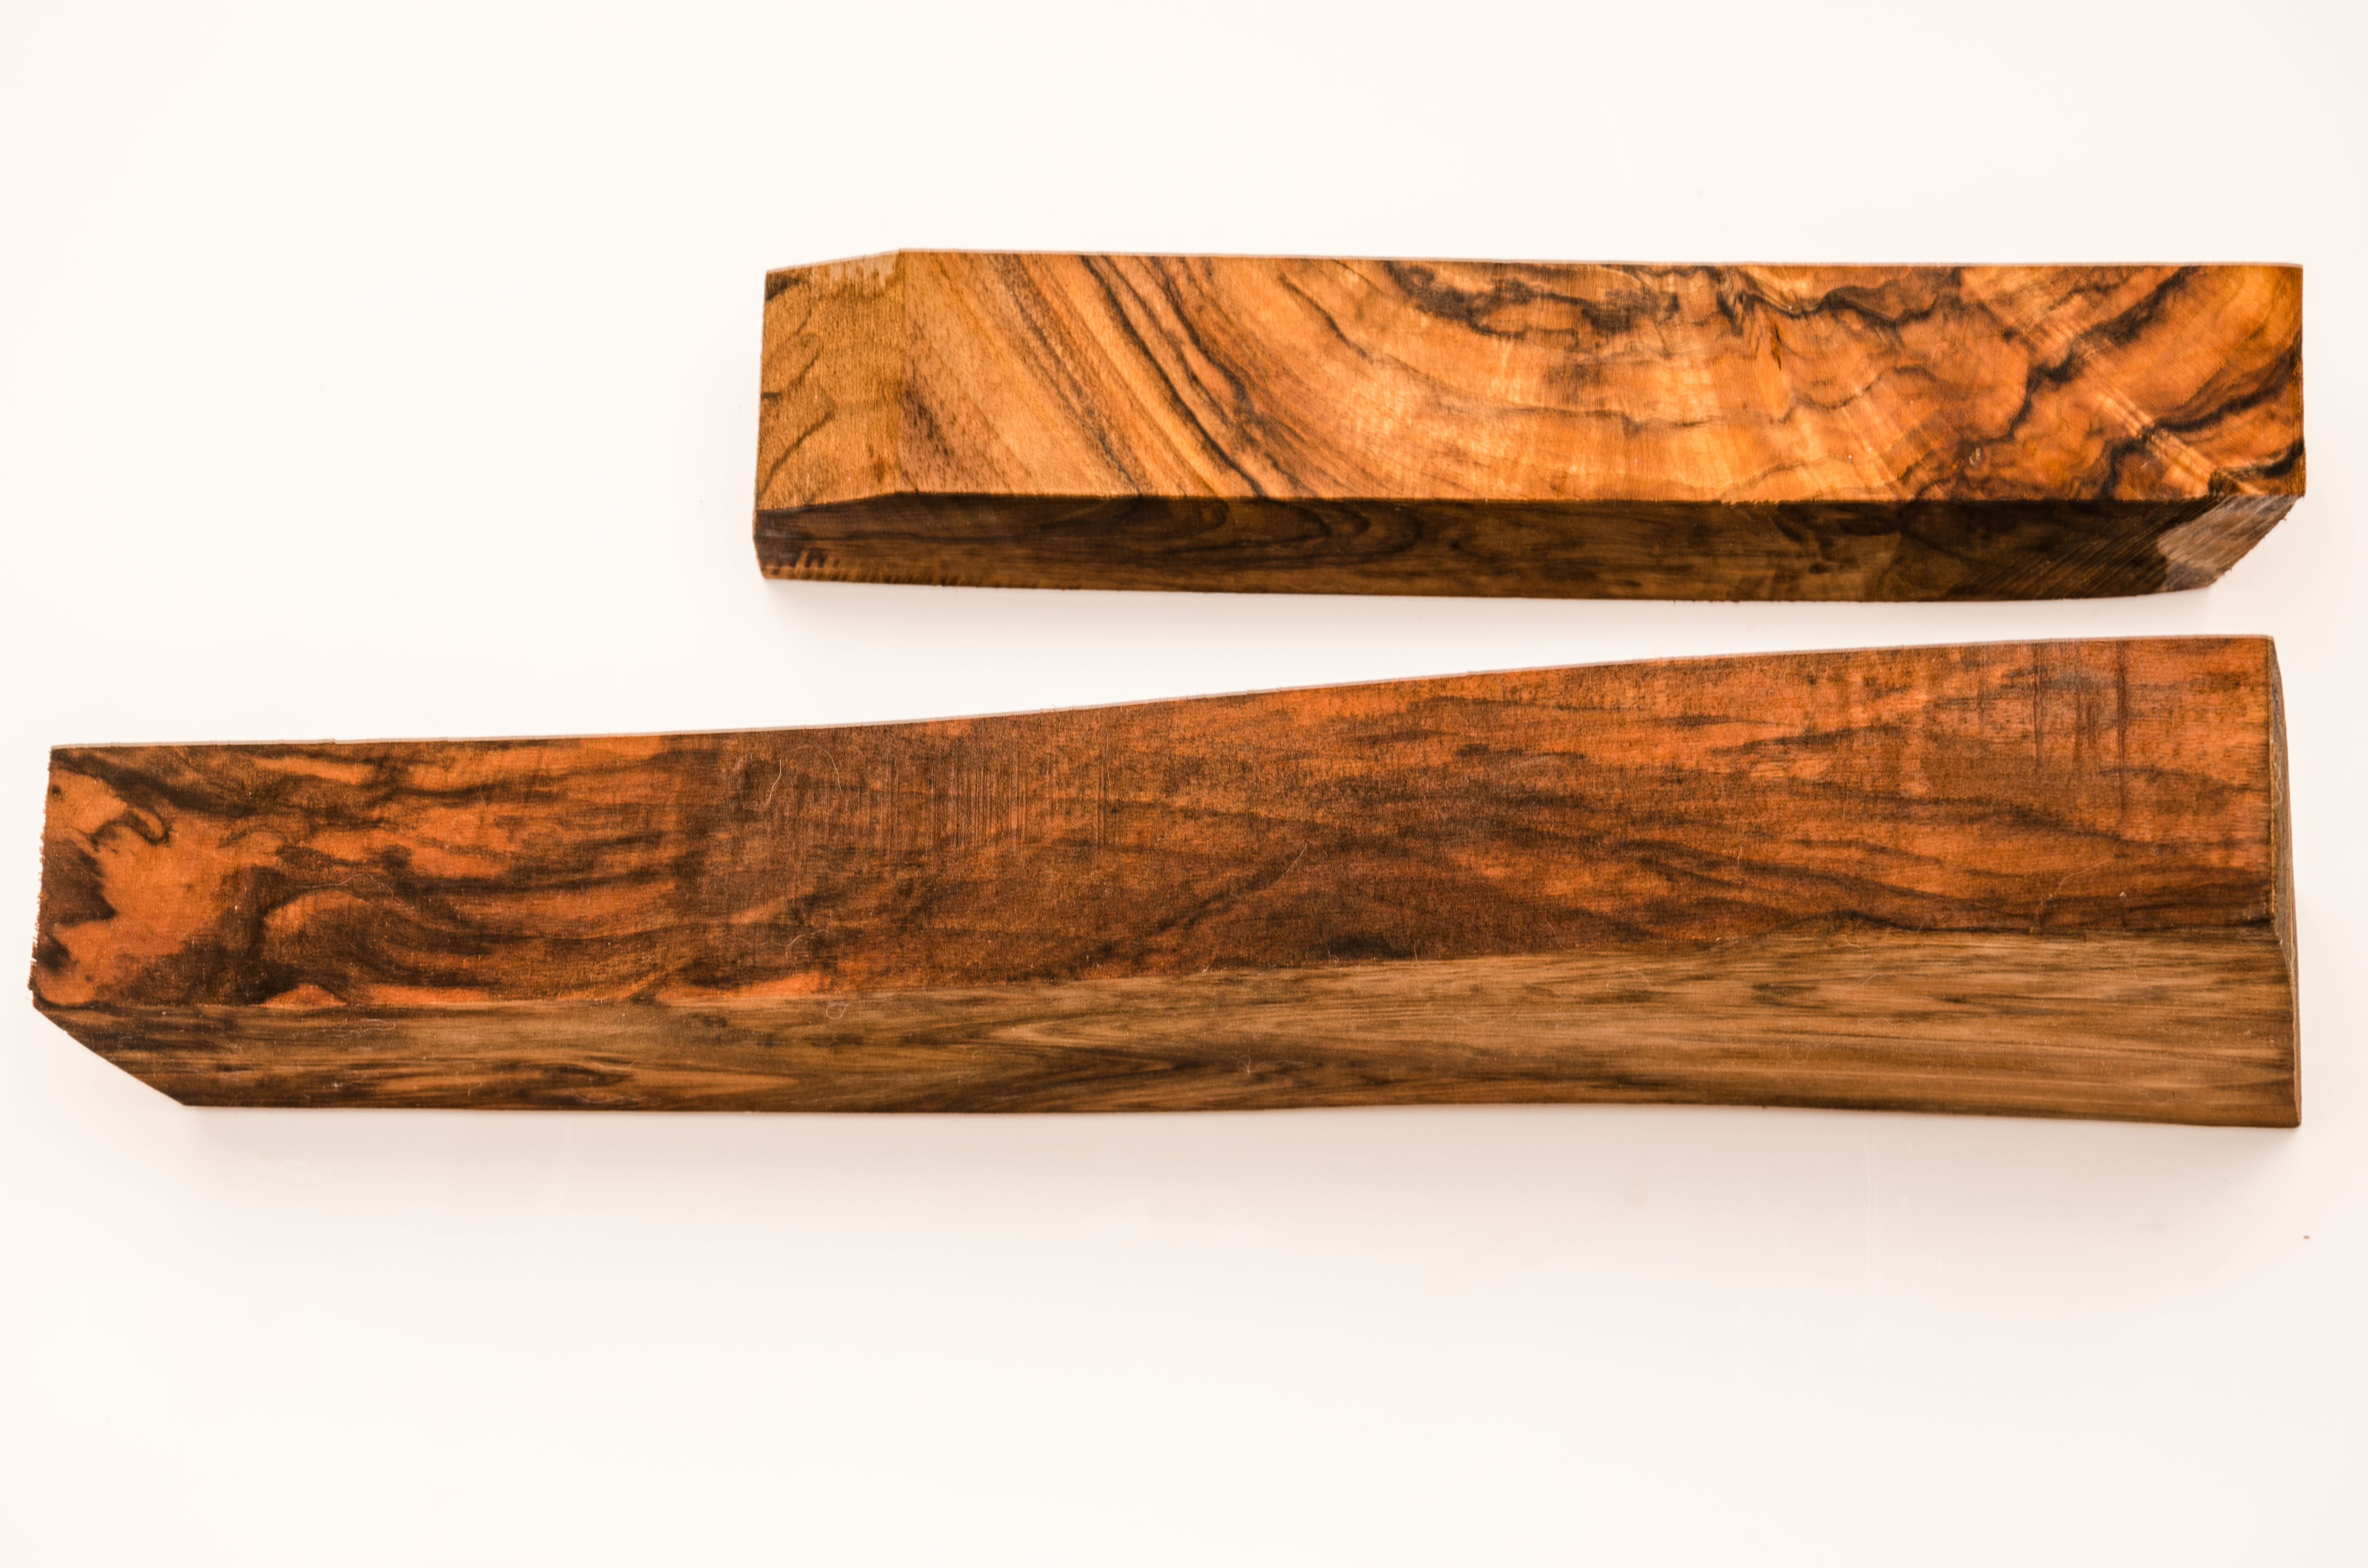 walnut_stock_blanks_for_guns_and_rifles-0212